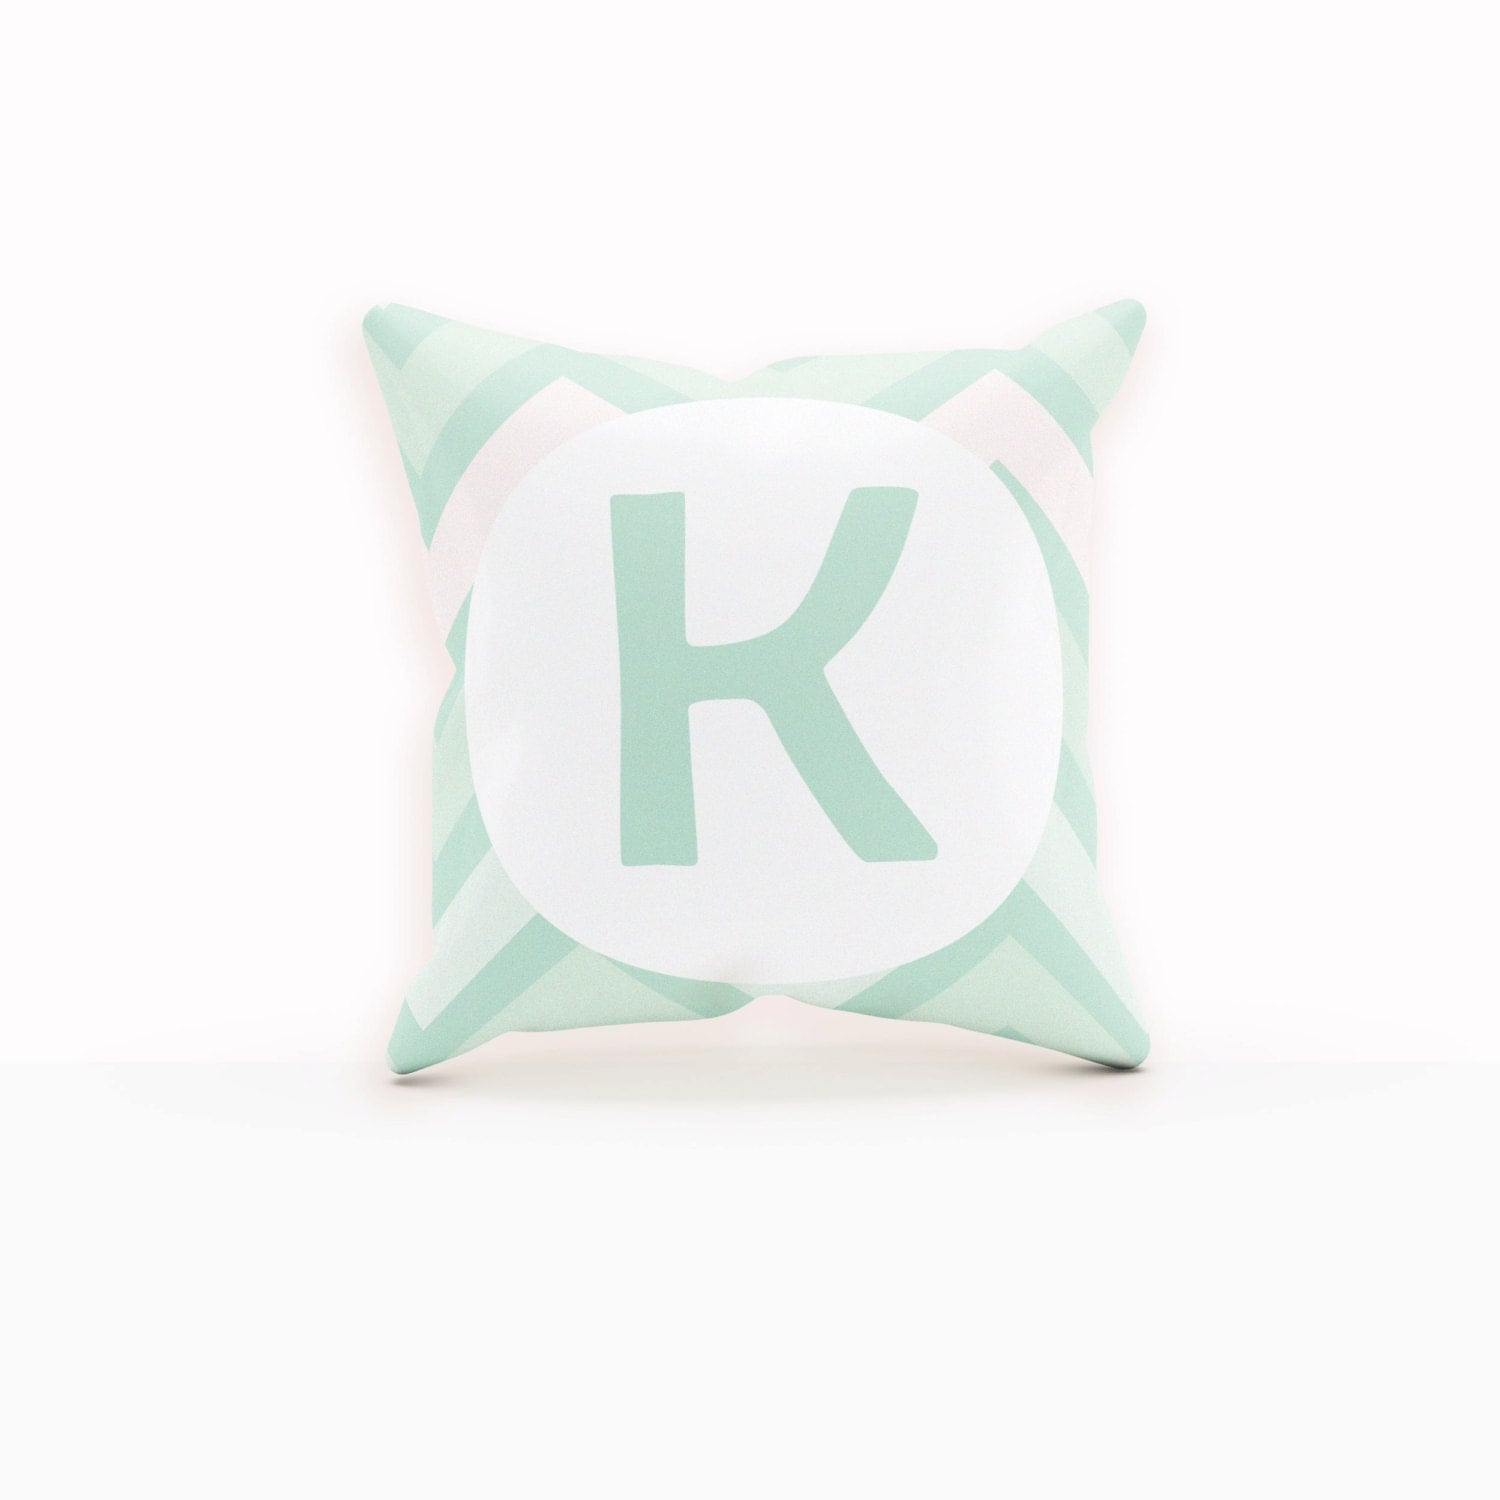 Decorative Pillows With Monogram : Mint Pillow Monogram Decorative Pillow Throw Pillows Modern